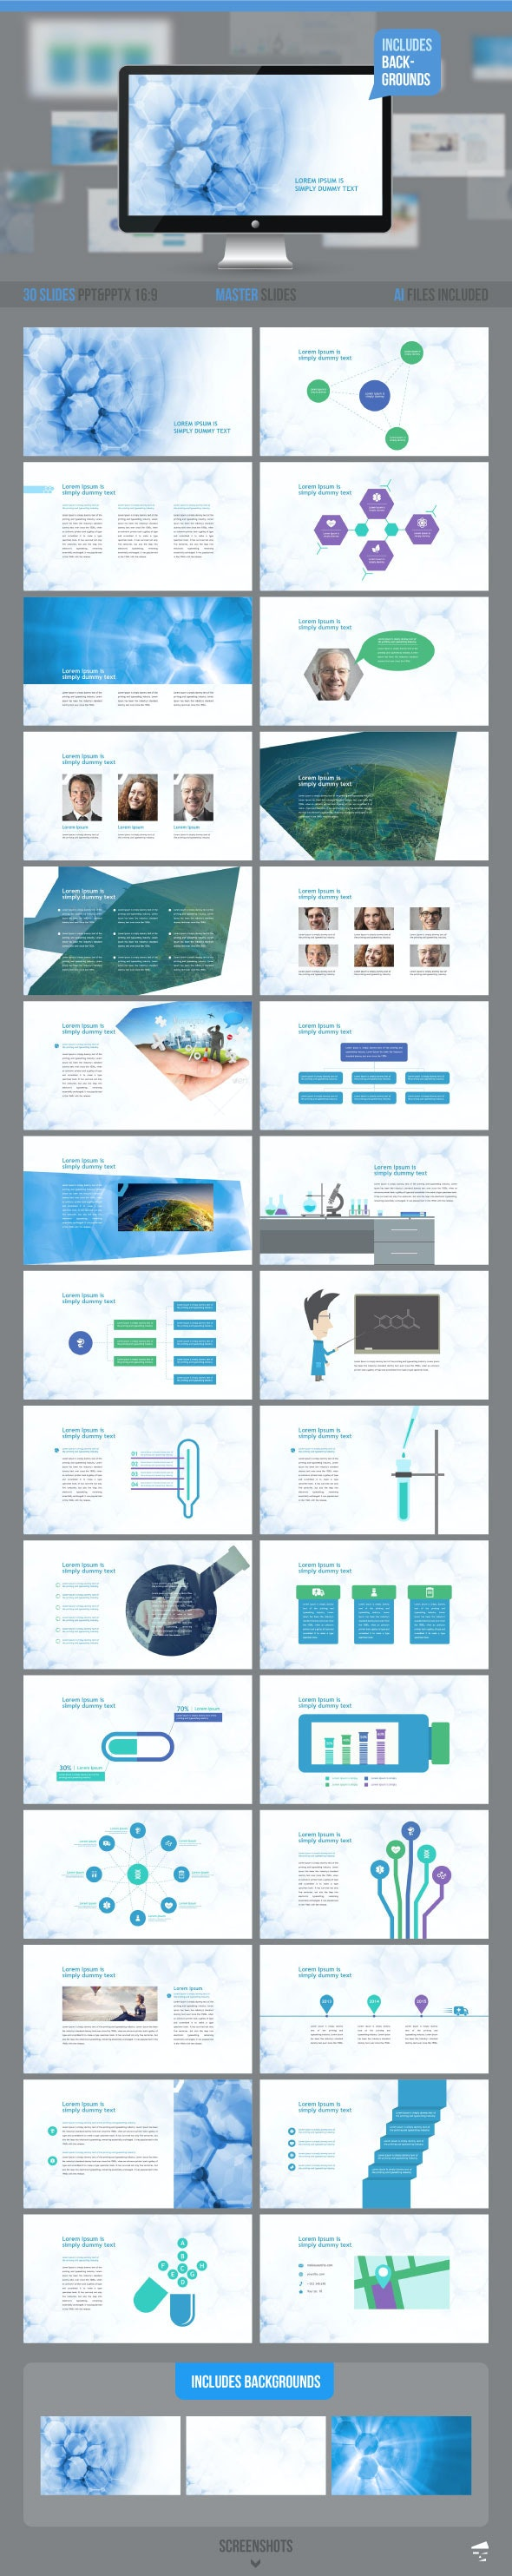 Medical Professional Presentation  - Abstract PowerPoint Templates